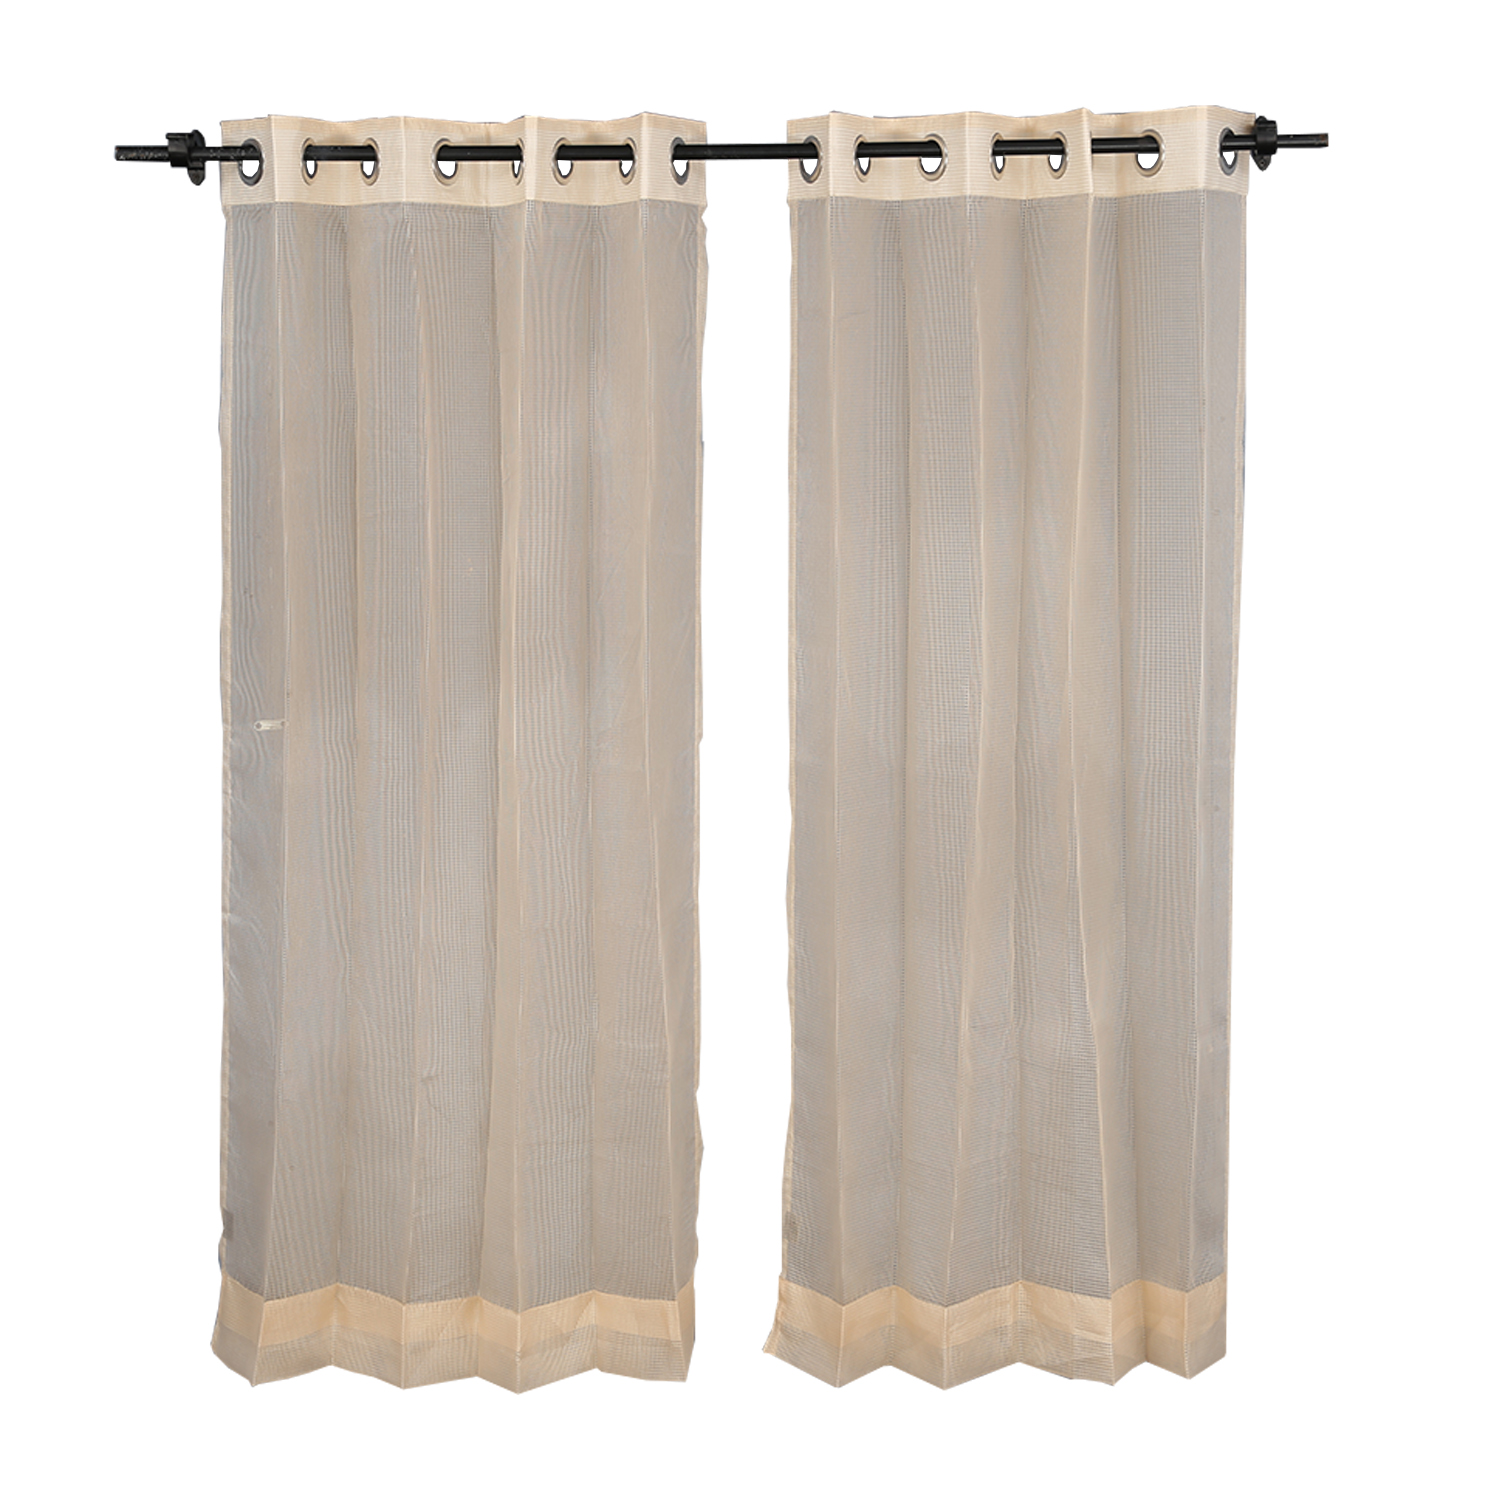 Sheer Extra large Curtain Gold Polyester Sheer Curtains in Gold Colour by Living Essence